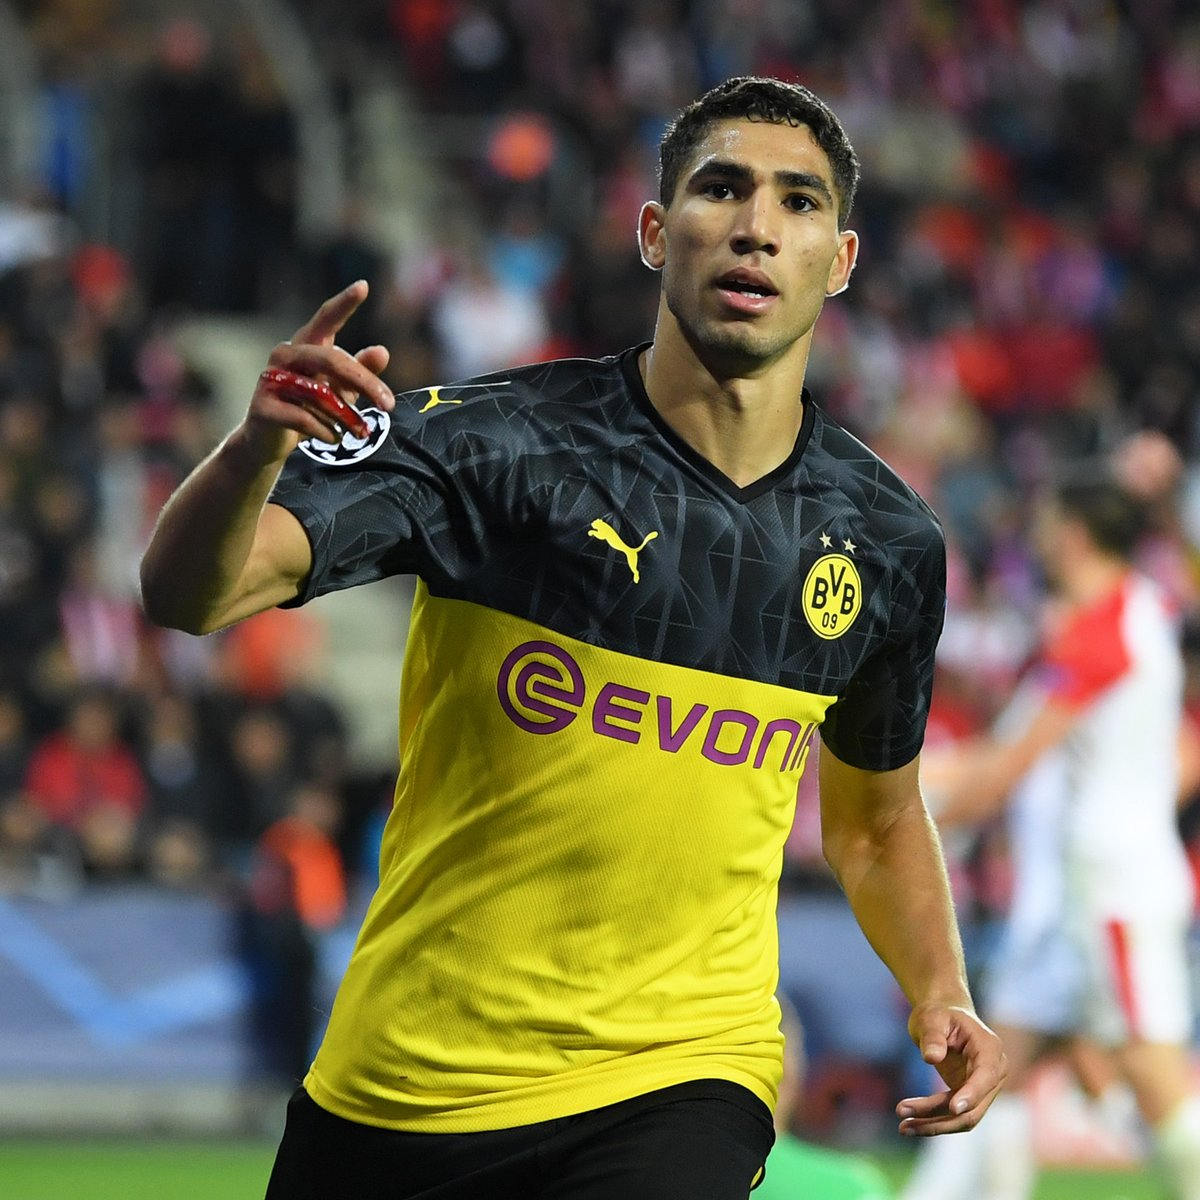 Dortmund's Achraf Hakimi has been named the Bundesliga's fastest player since data collection began in 2011  <br>http://pic.twitter.com/DDBJ9nAOpa